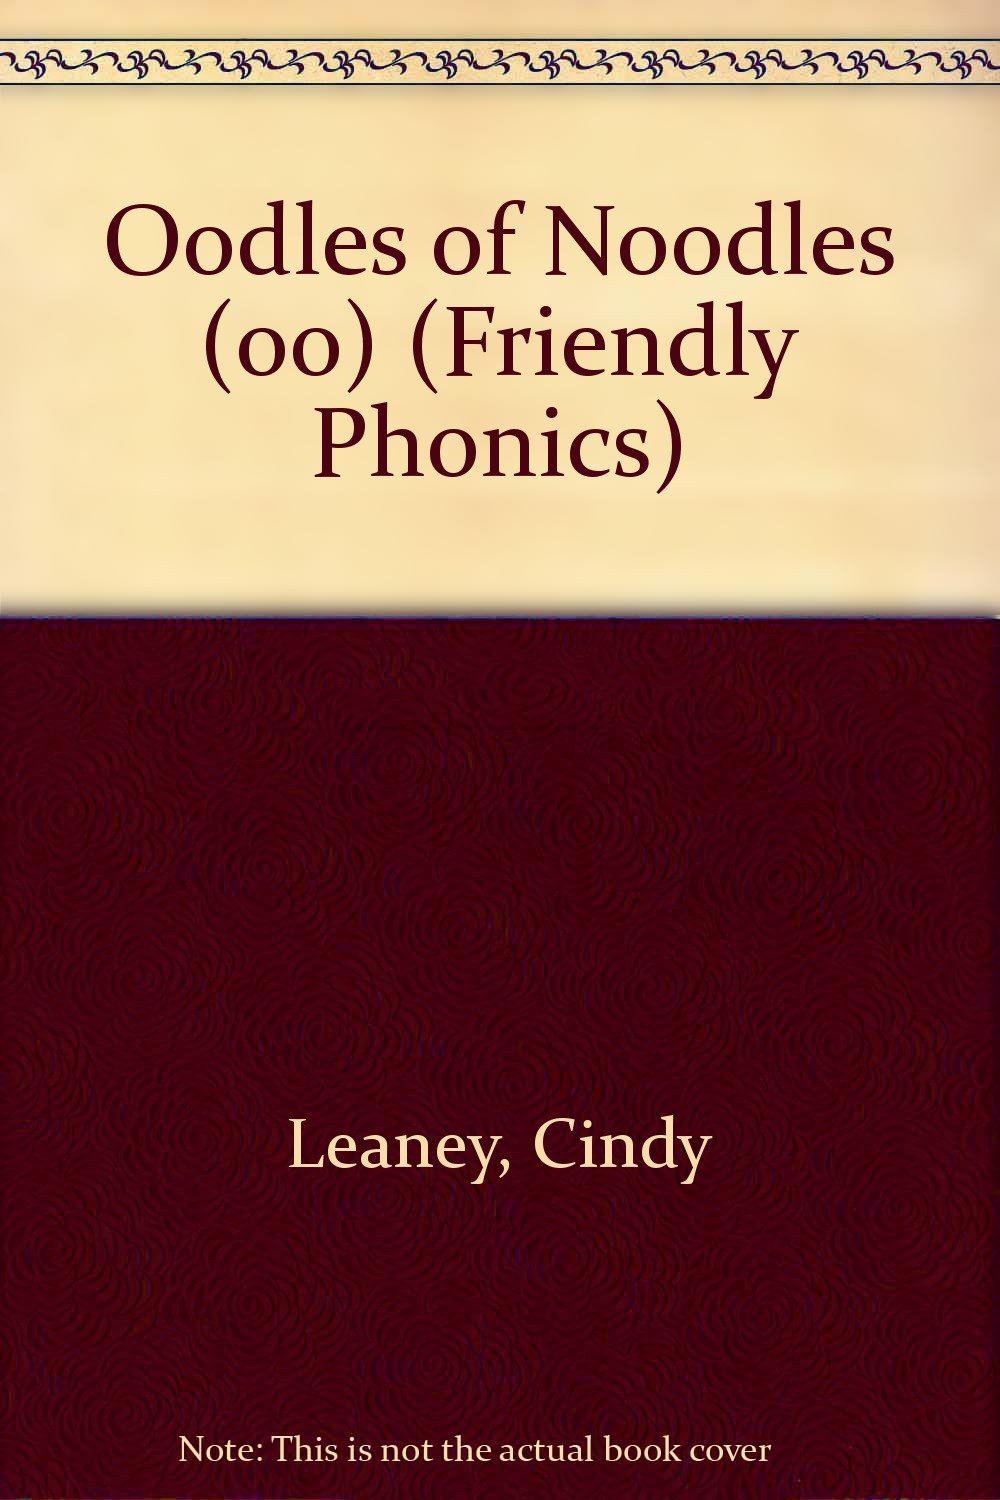 Download Oodles of Noodles (oo) (Friendly Phonics) pdf